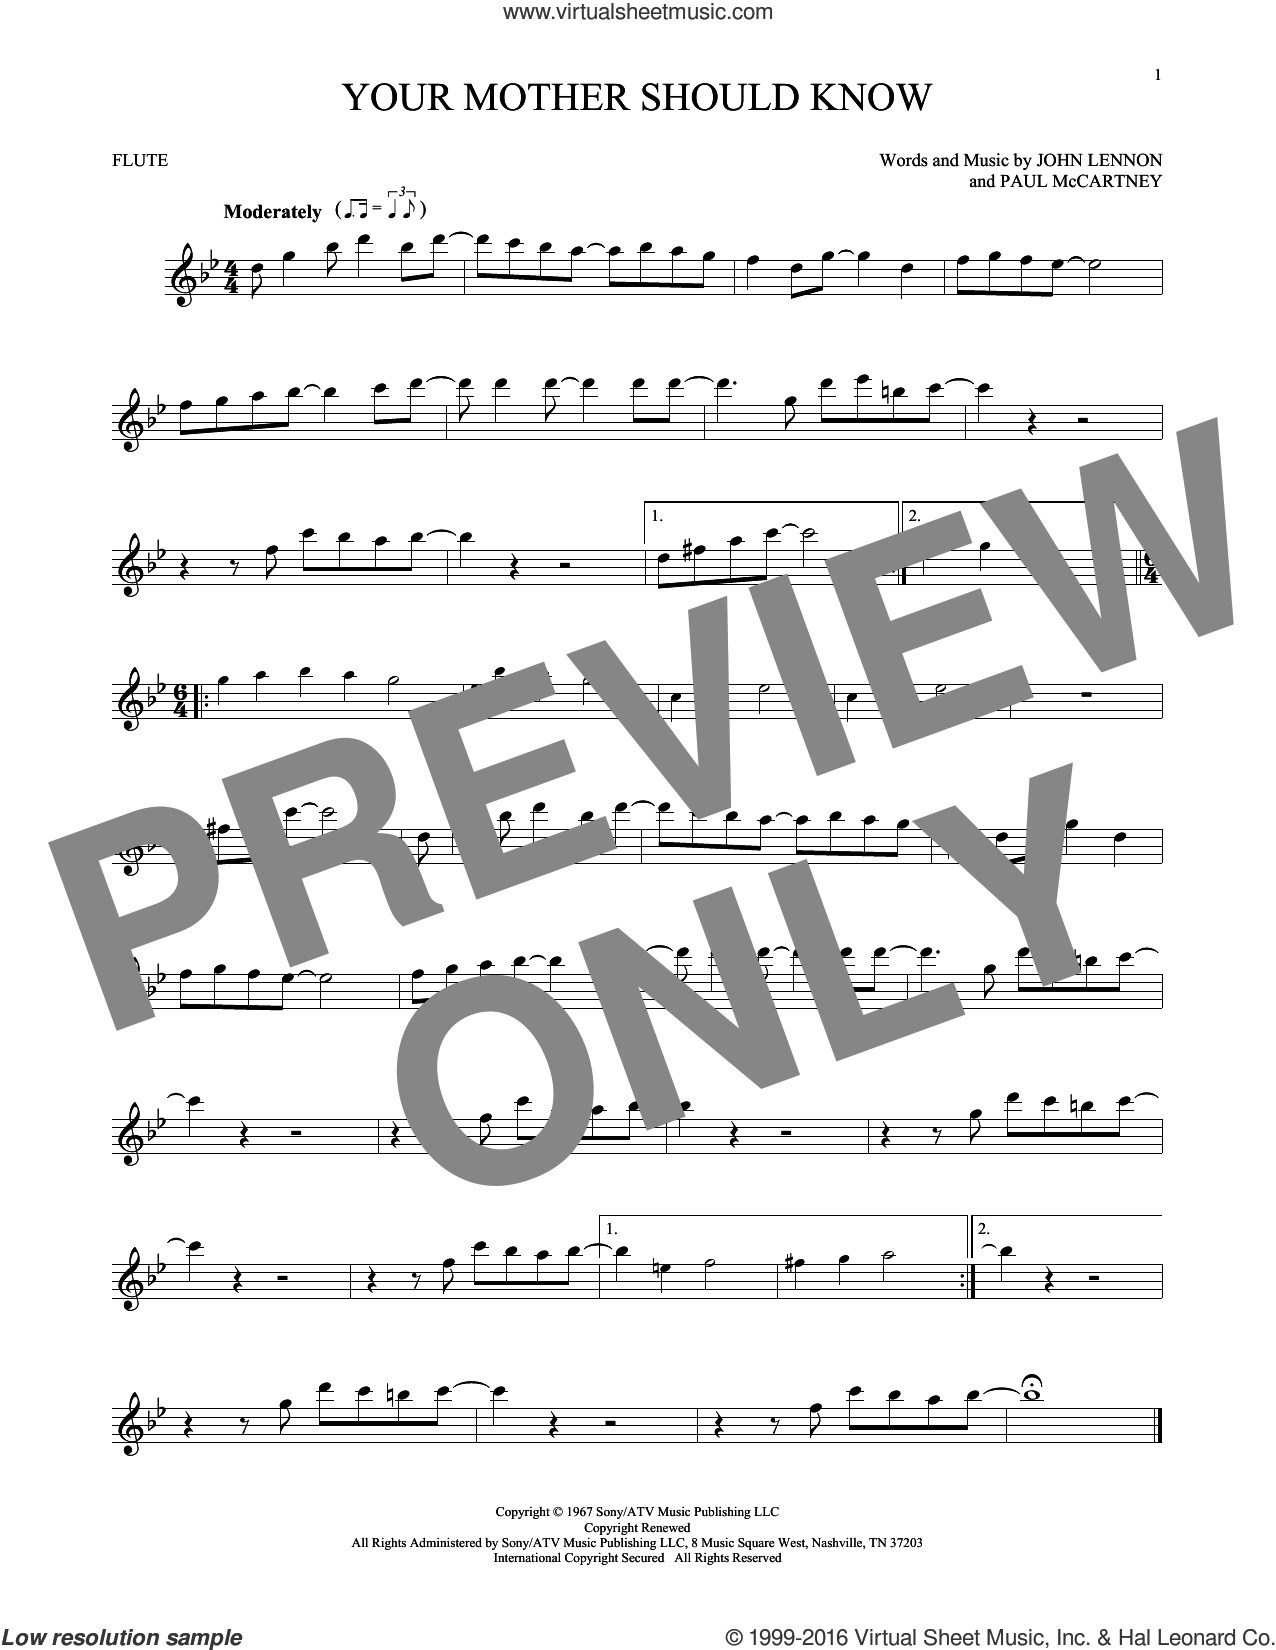 Your Mother Should Know sheet music for flute solo by Paul McCartney, The Beatles and John Lennon. Score Image Preview.